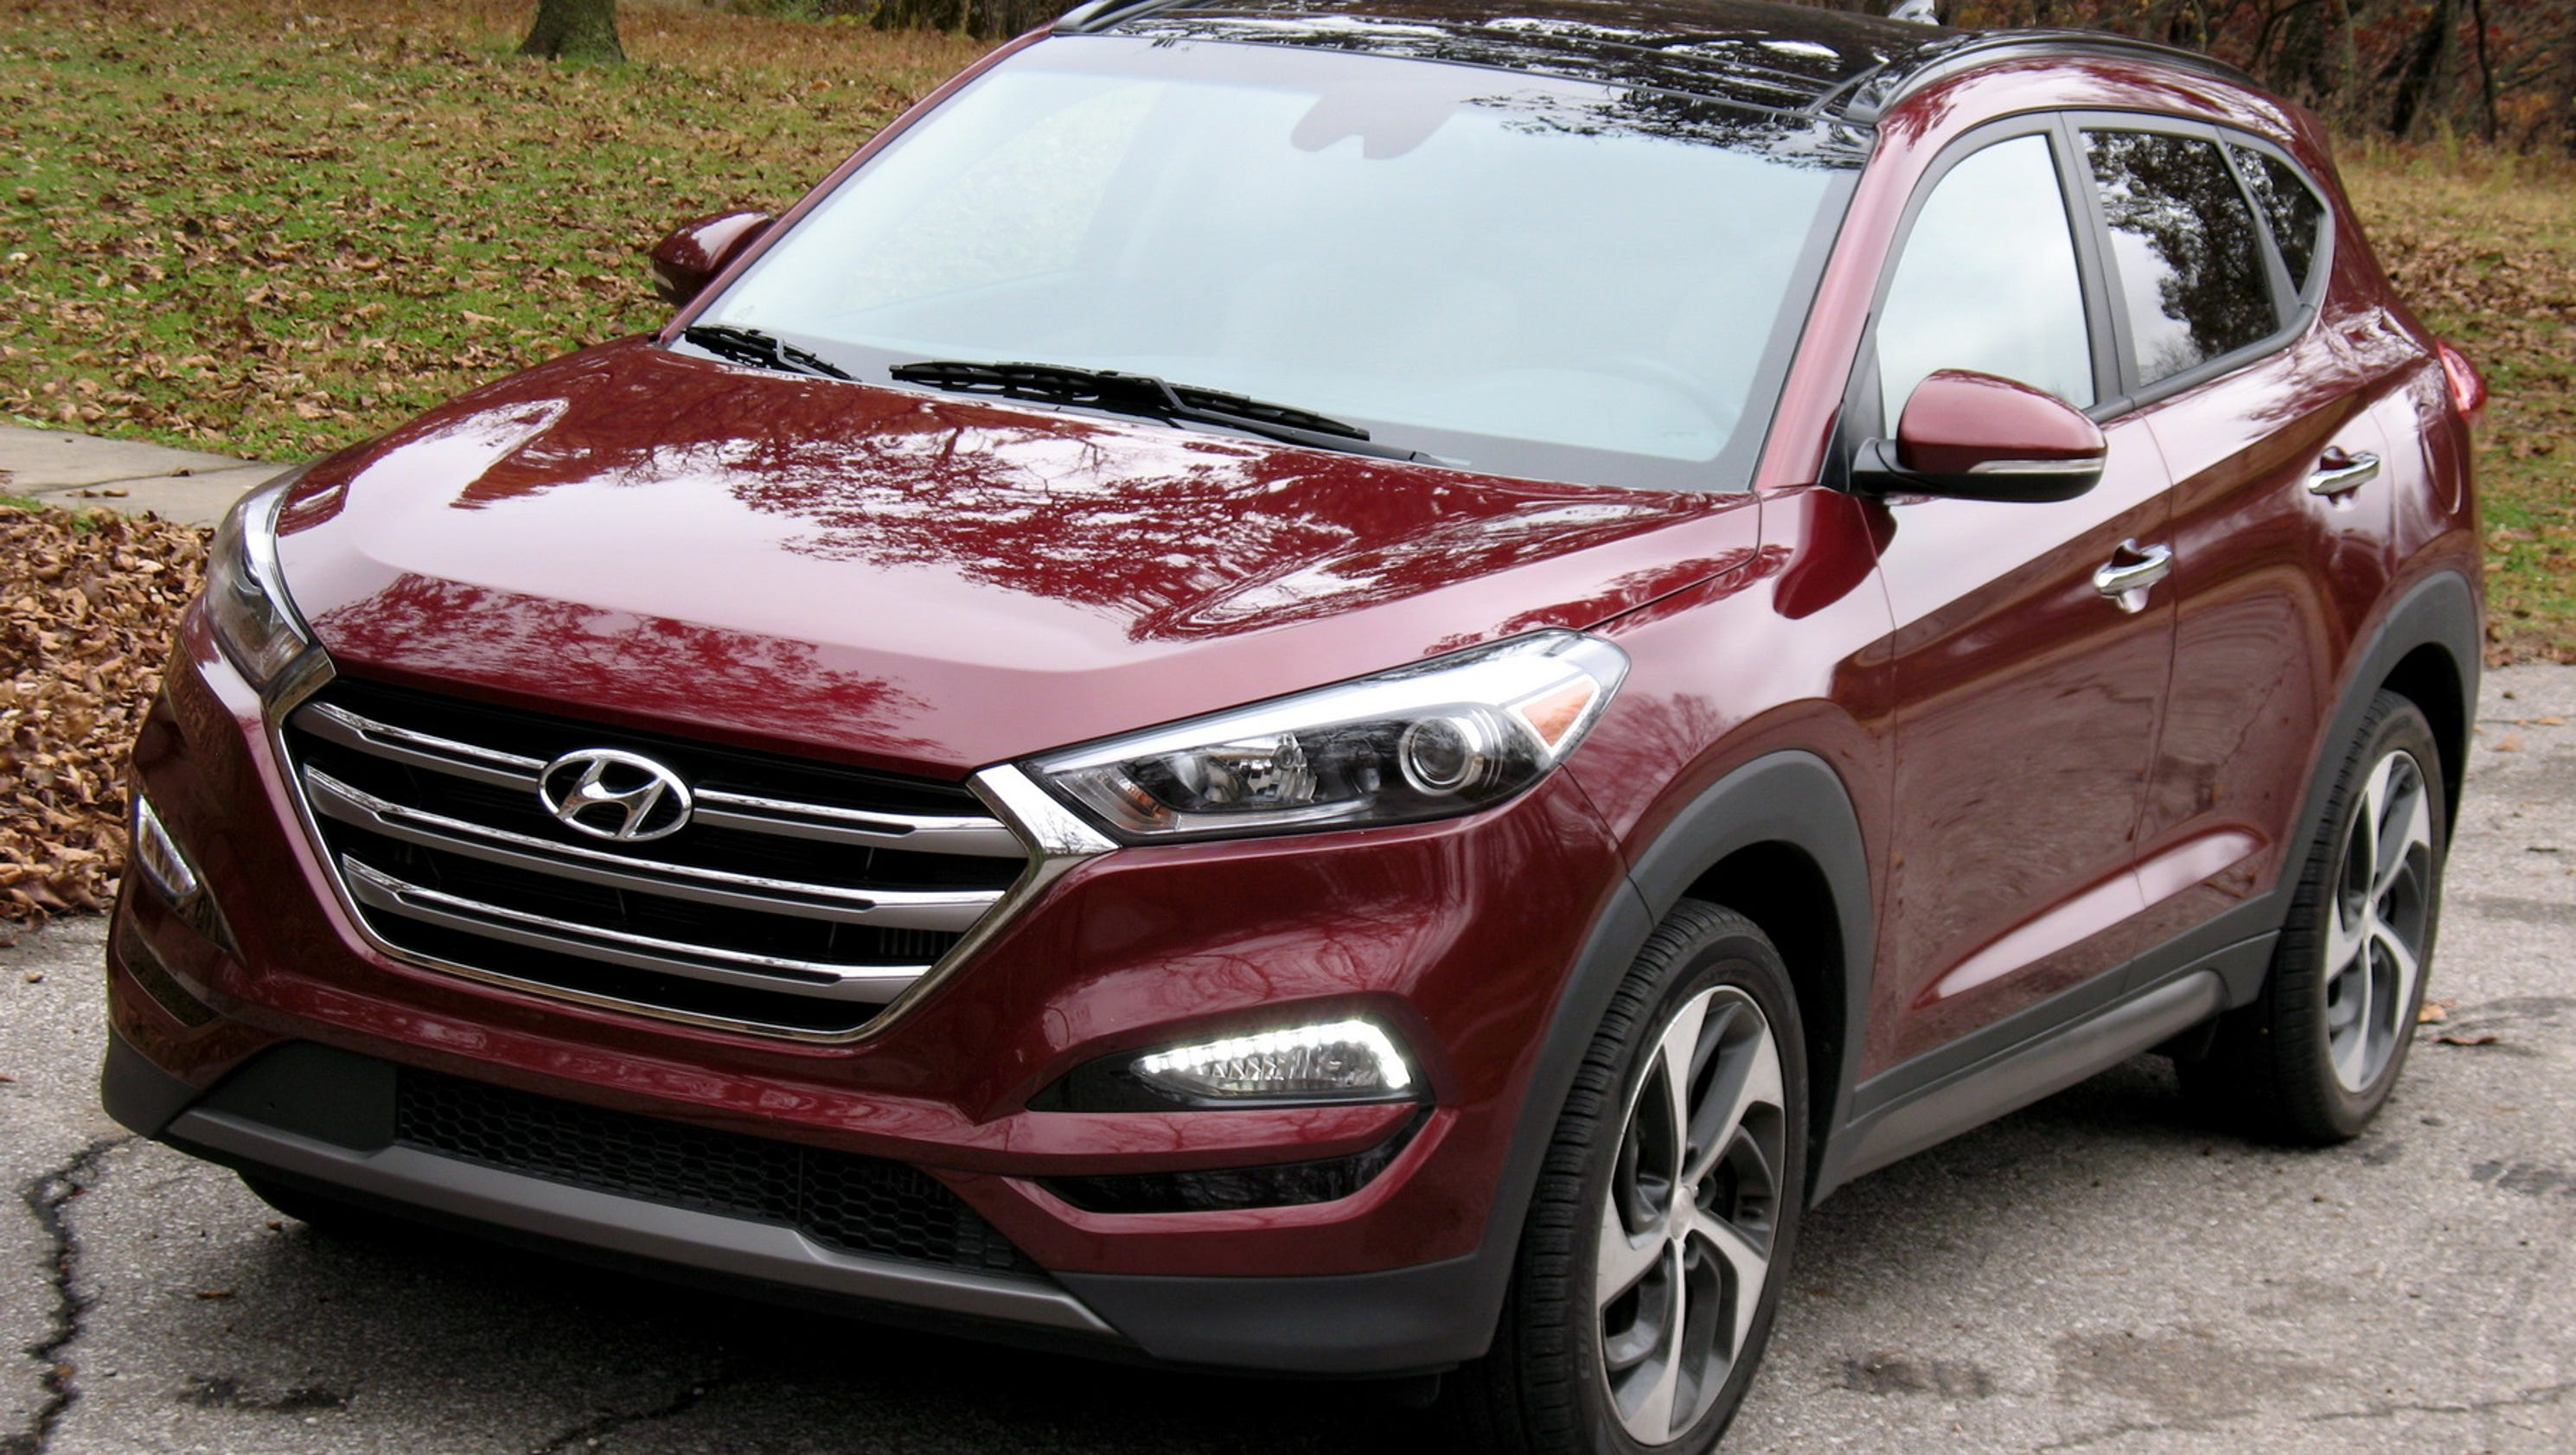 2016 Hyundai Tucson Is Edgy Stylish